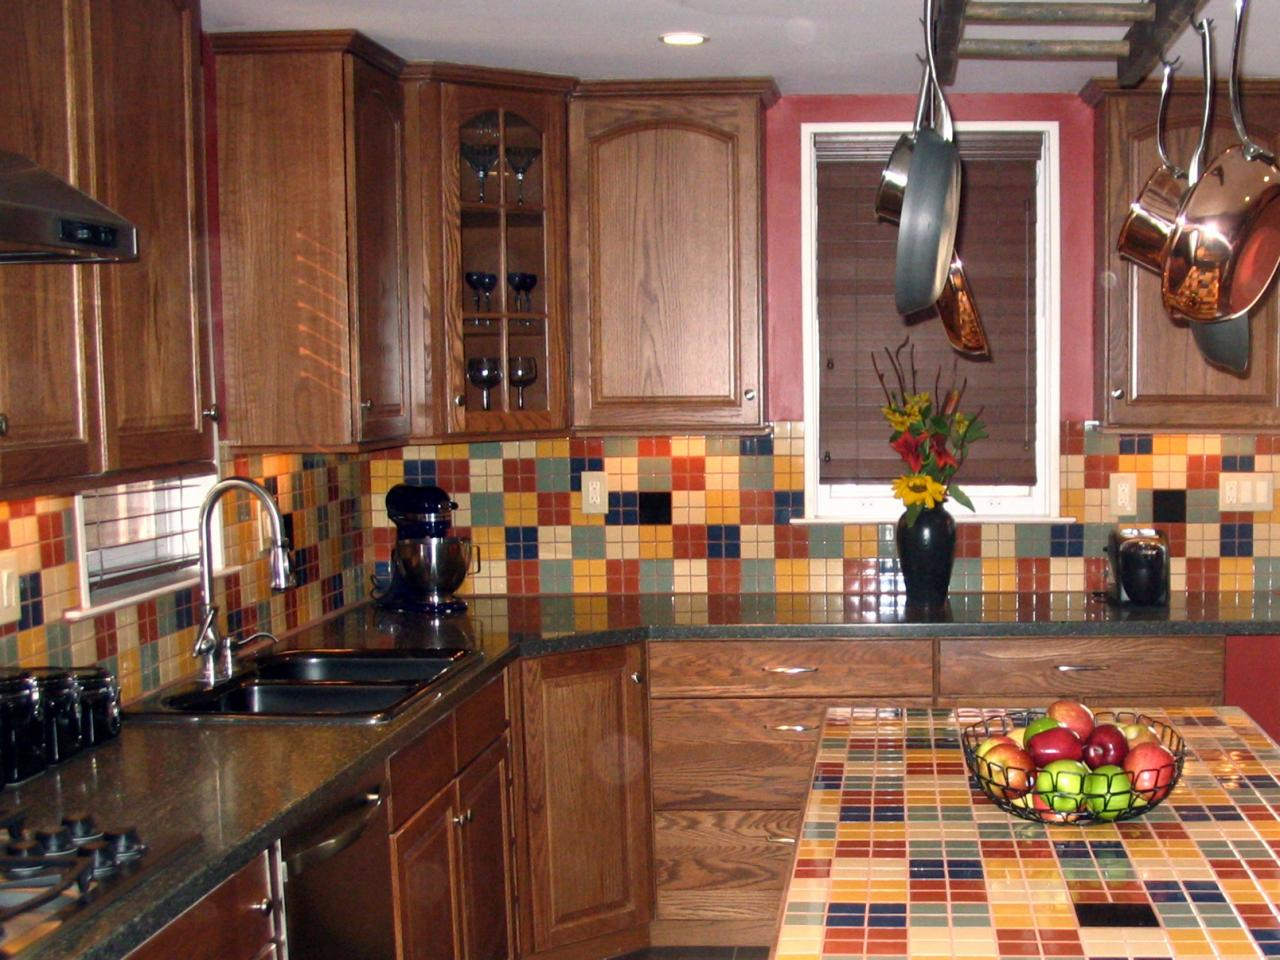 Of Kitchen Tiles Kitchen Backsplash Design Ideas Hgtv